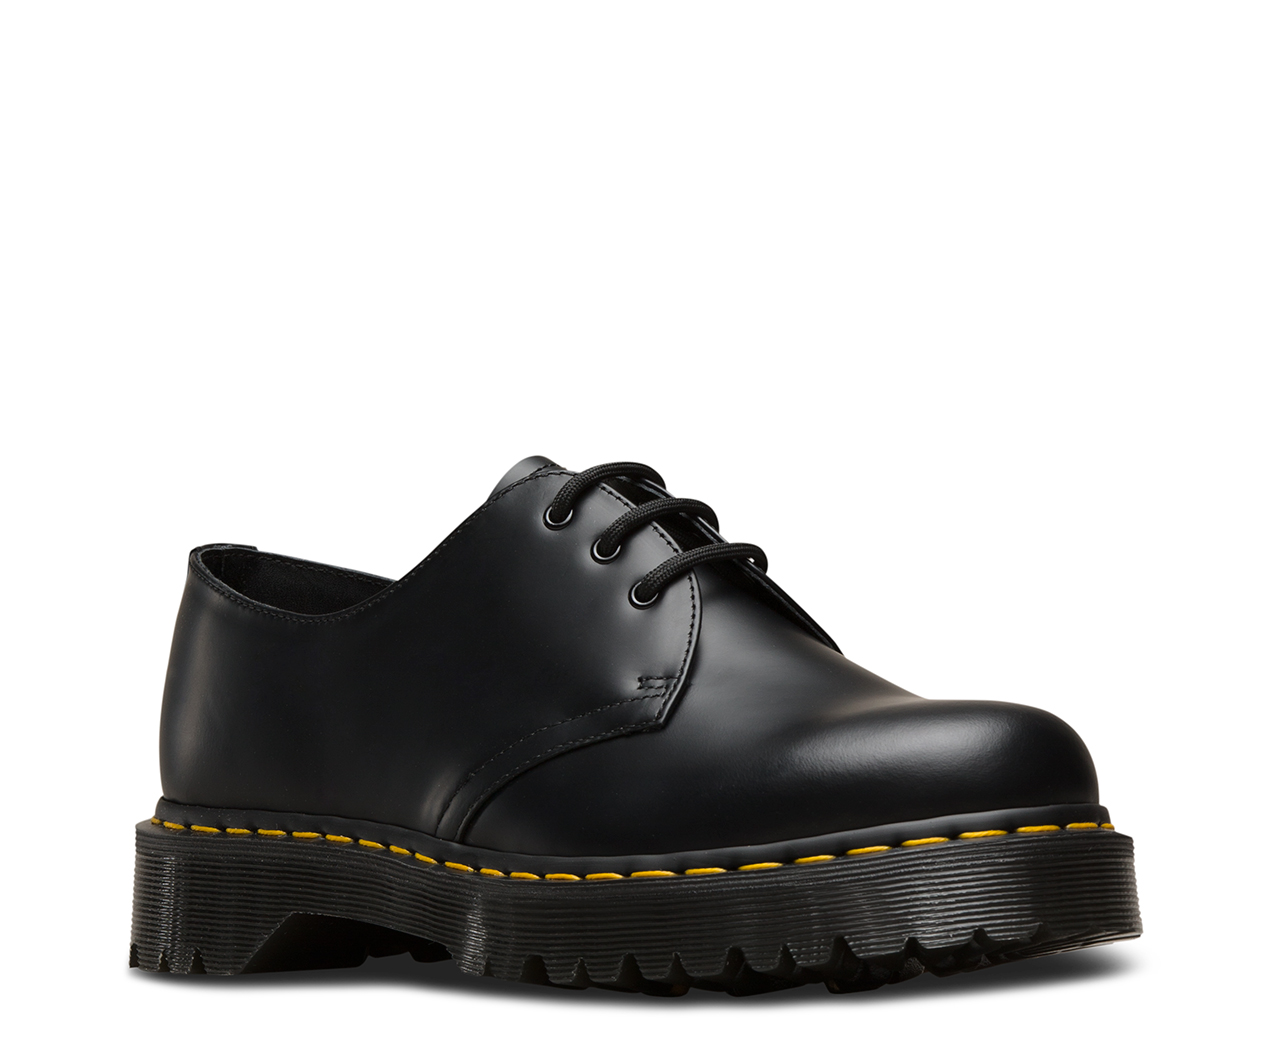 1461 BEX | Summer Shoes | The Official US Dr Martens Store